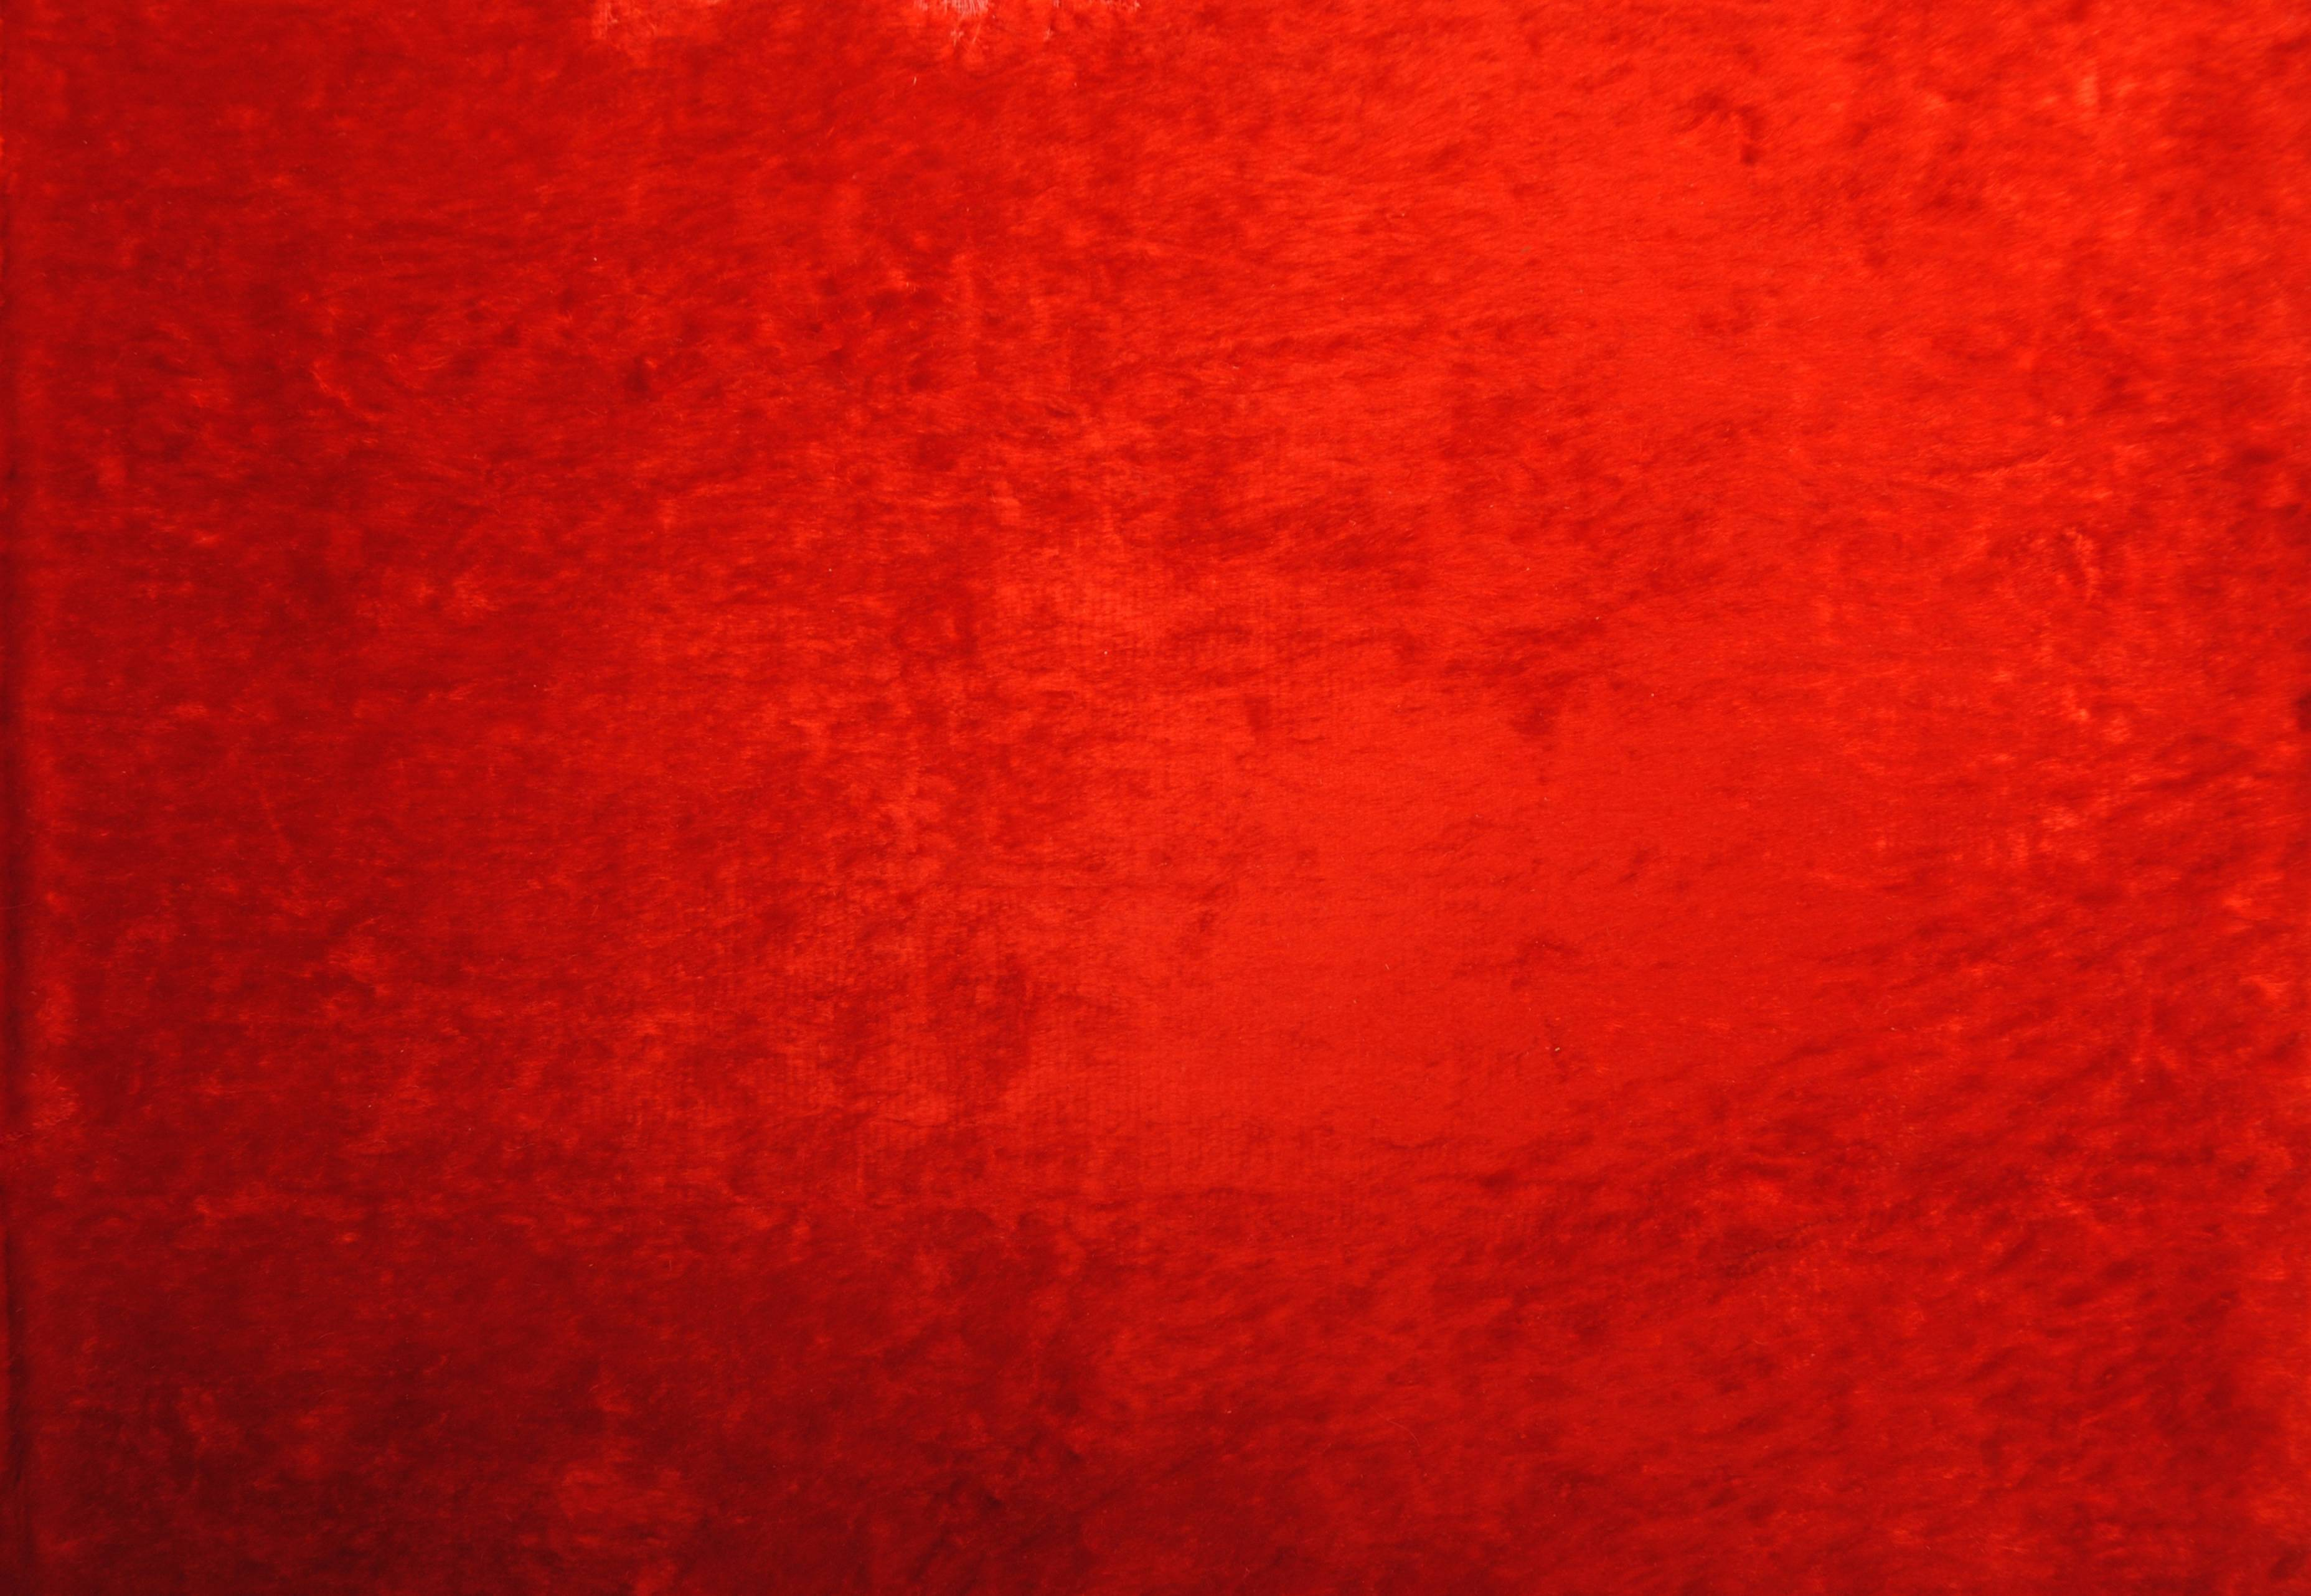 Textured Red Wallpapers and Background